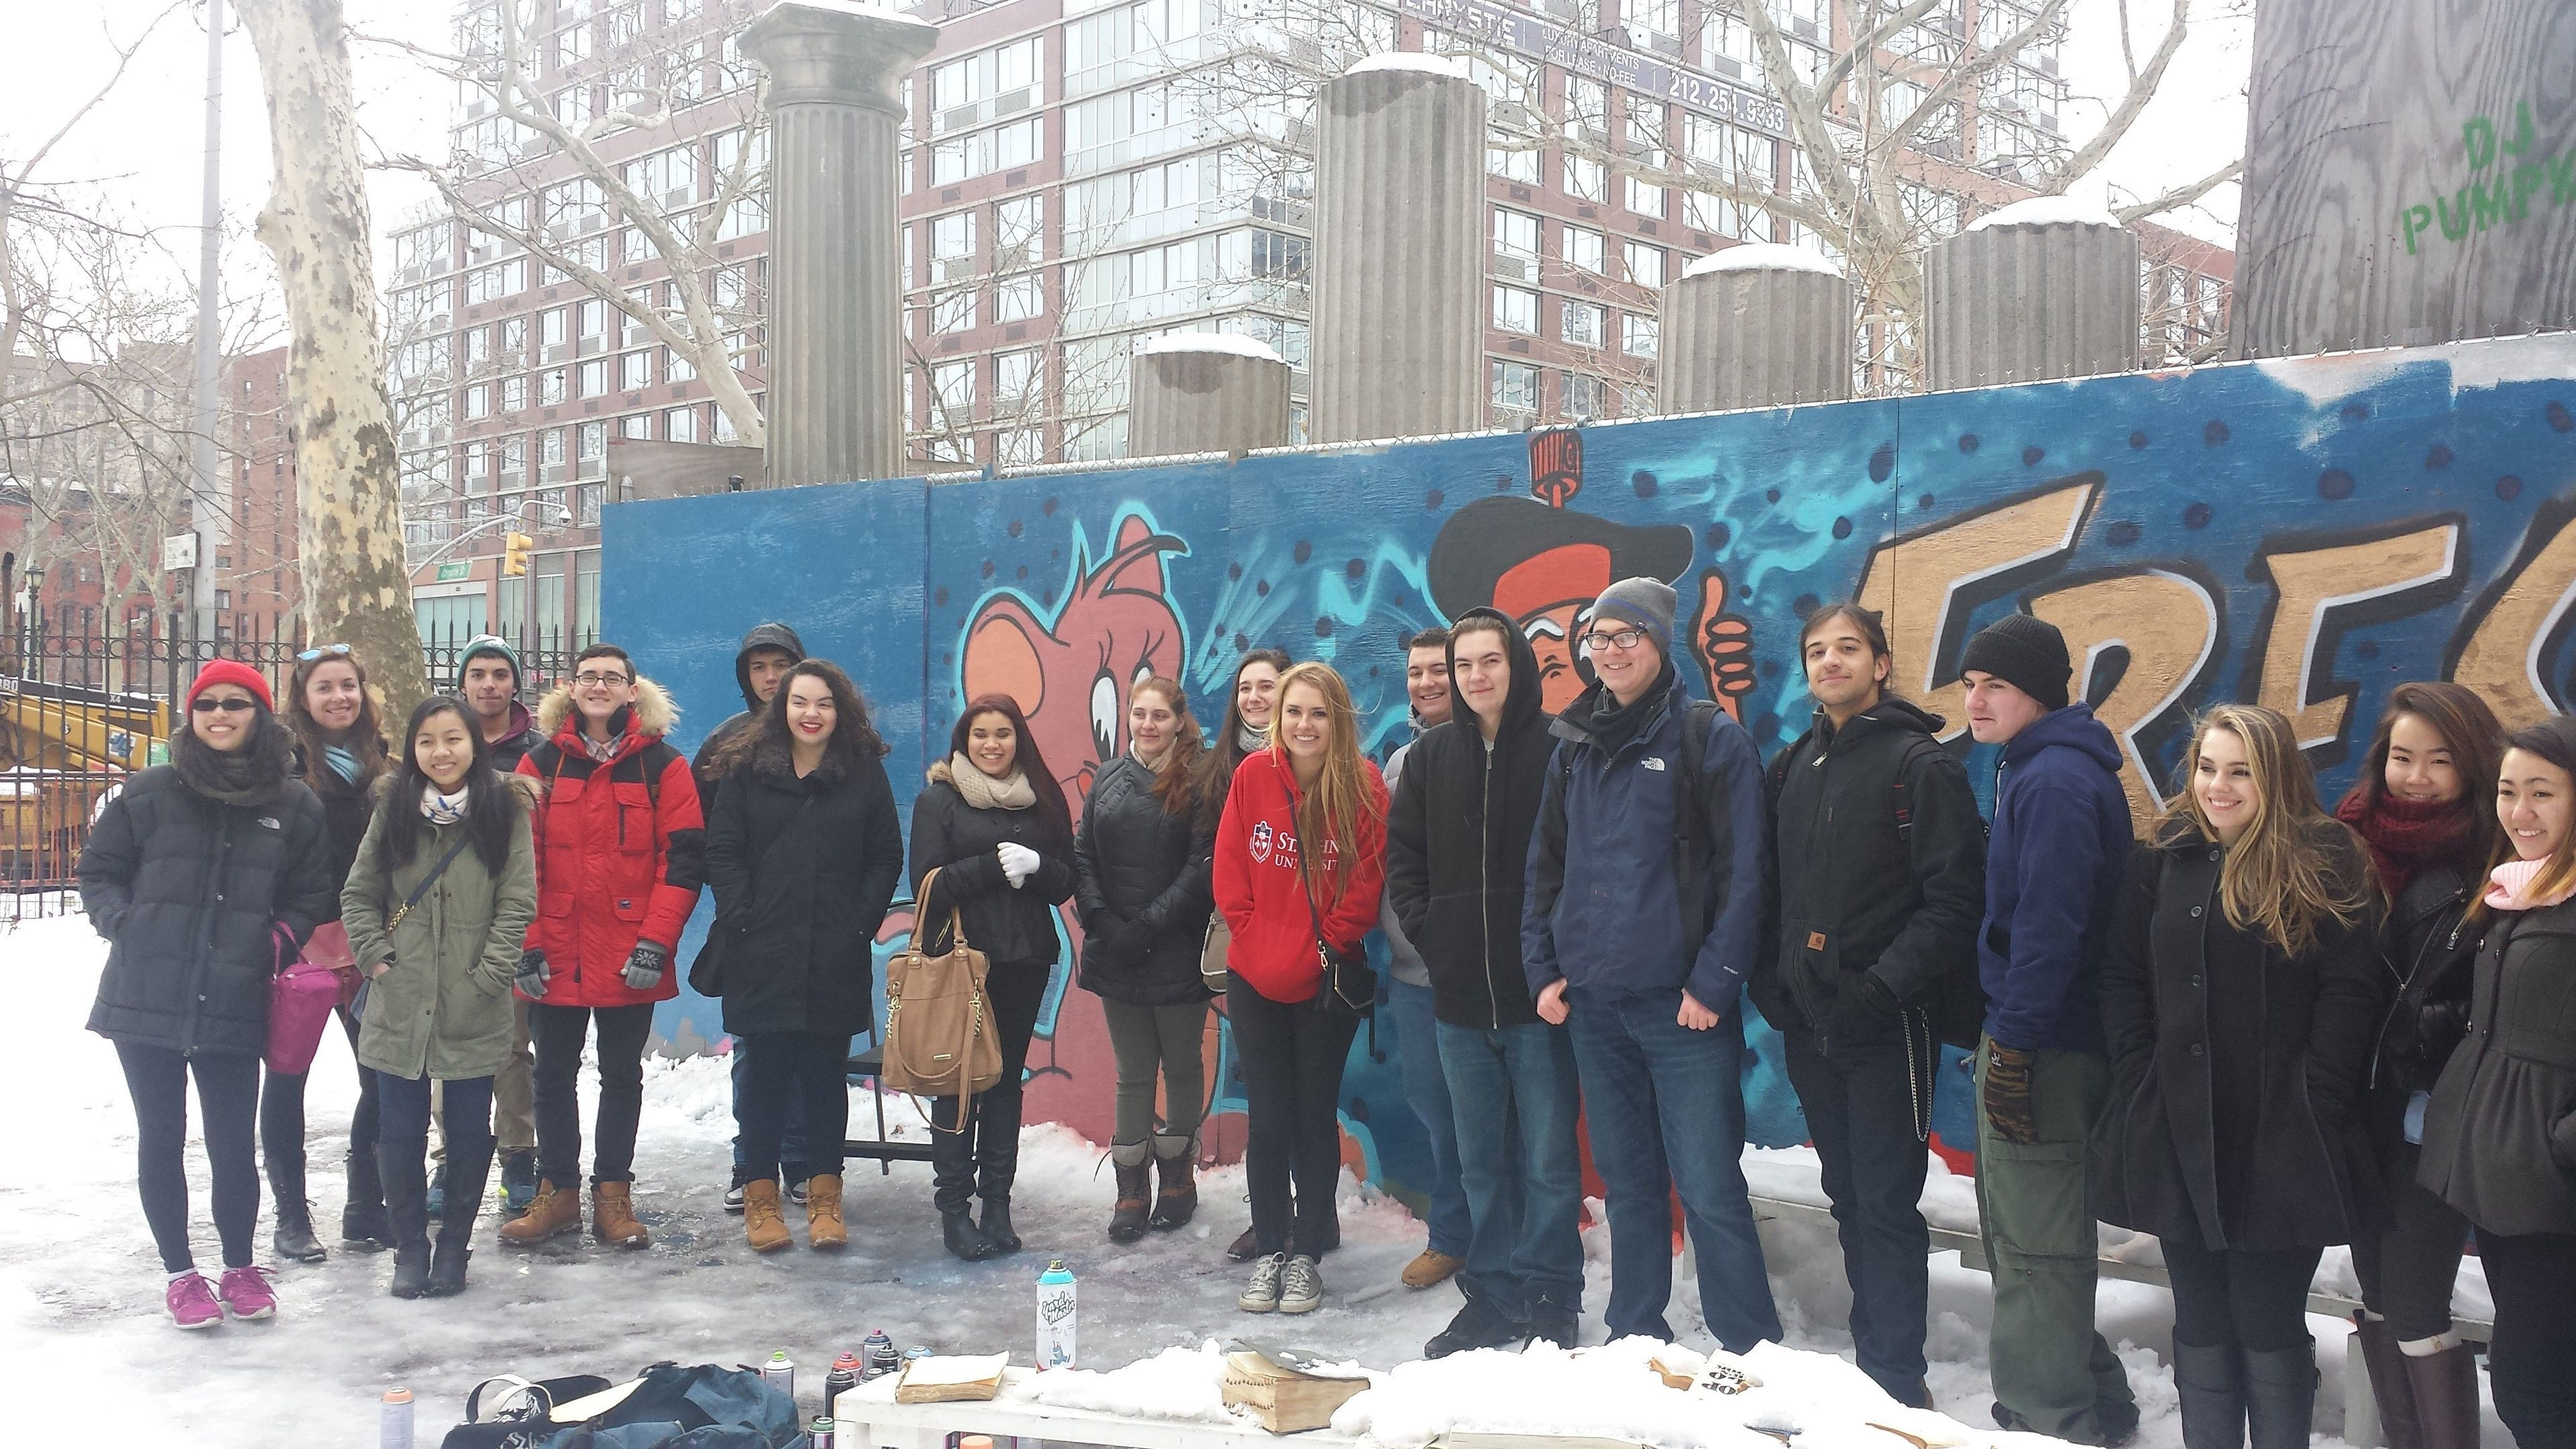 A group in a Graffiti tour in New York